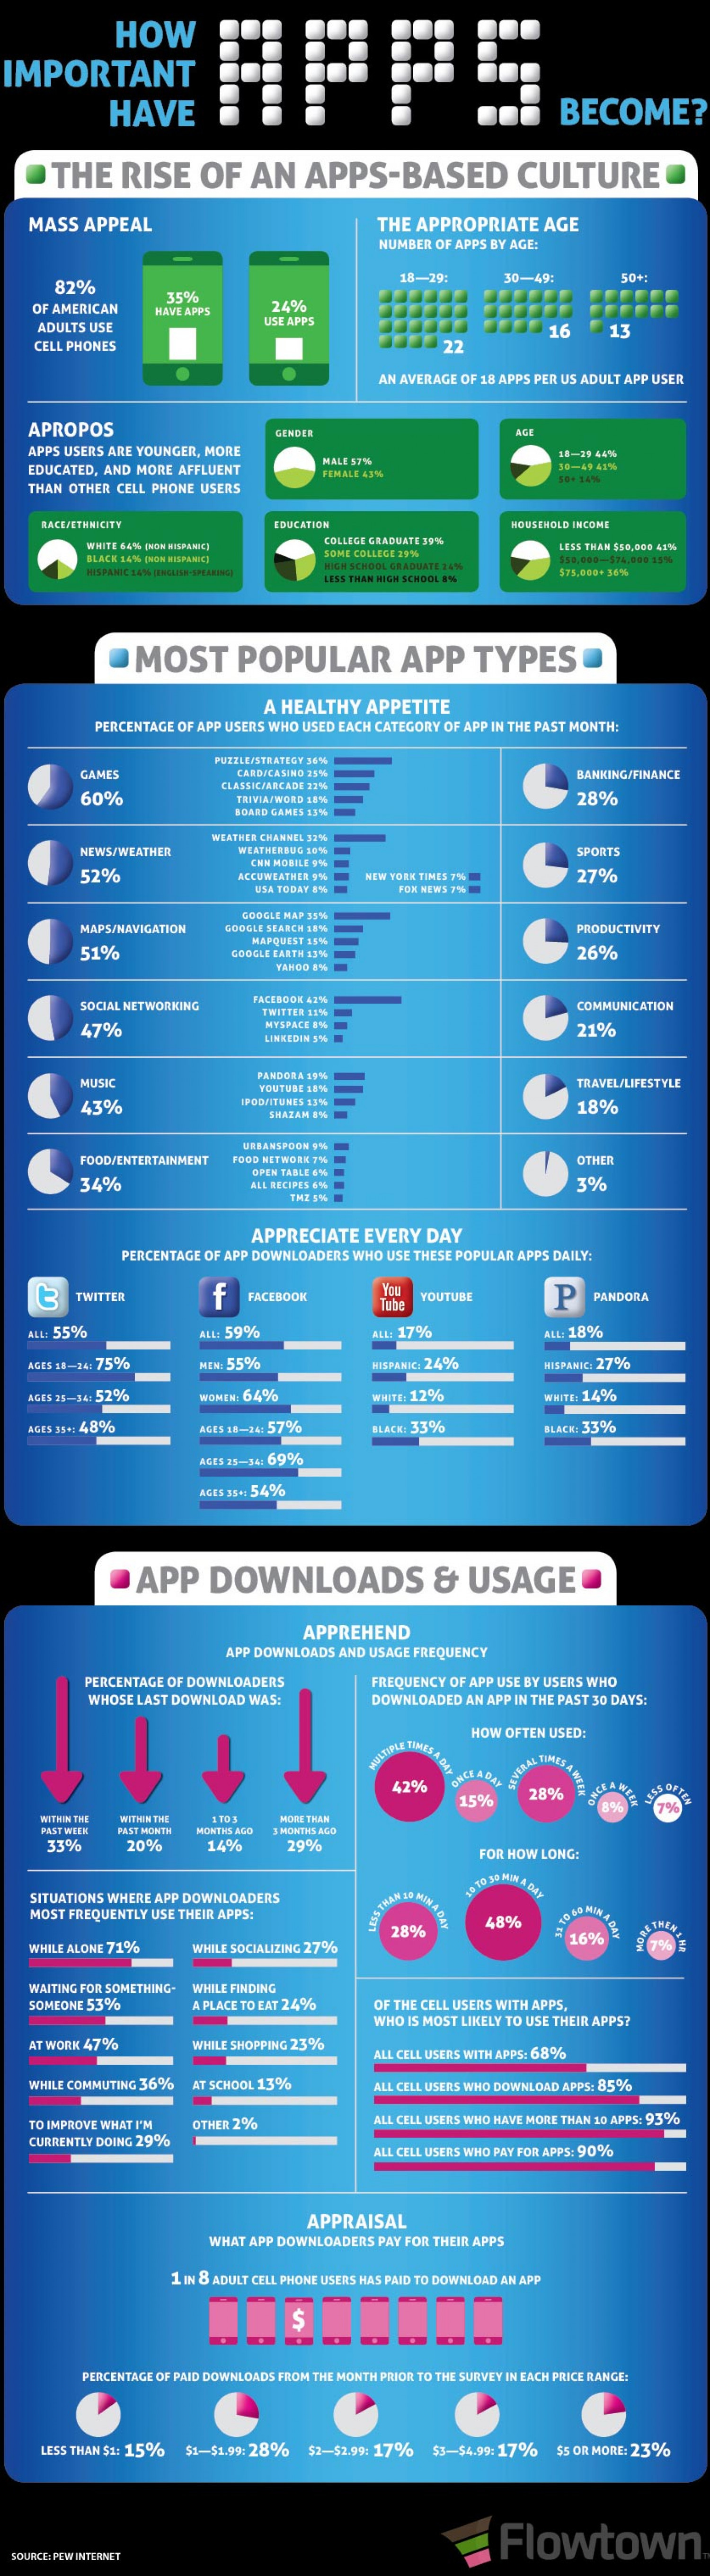 How Important Have Apps Become? Infographic